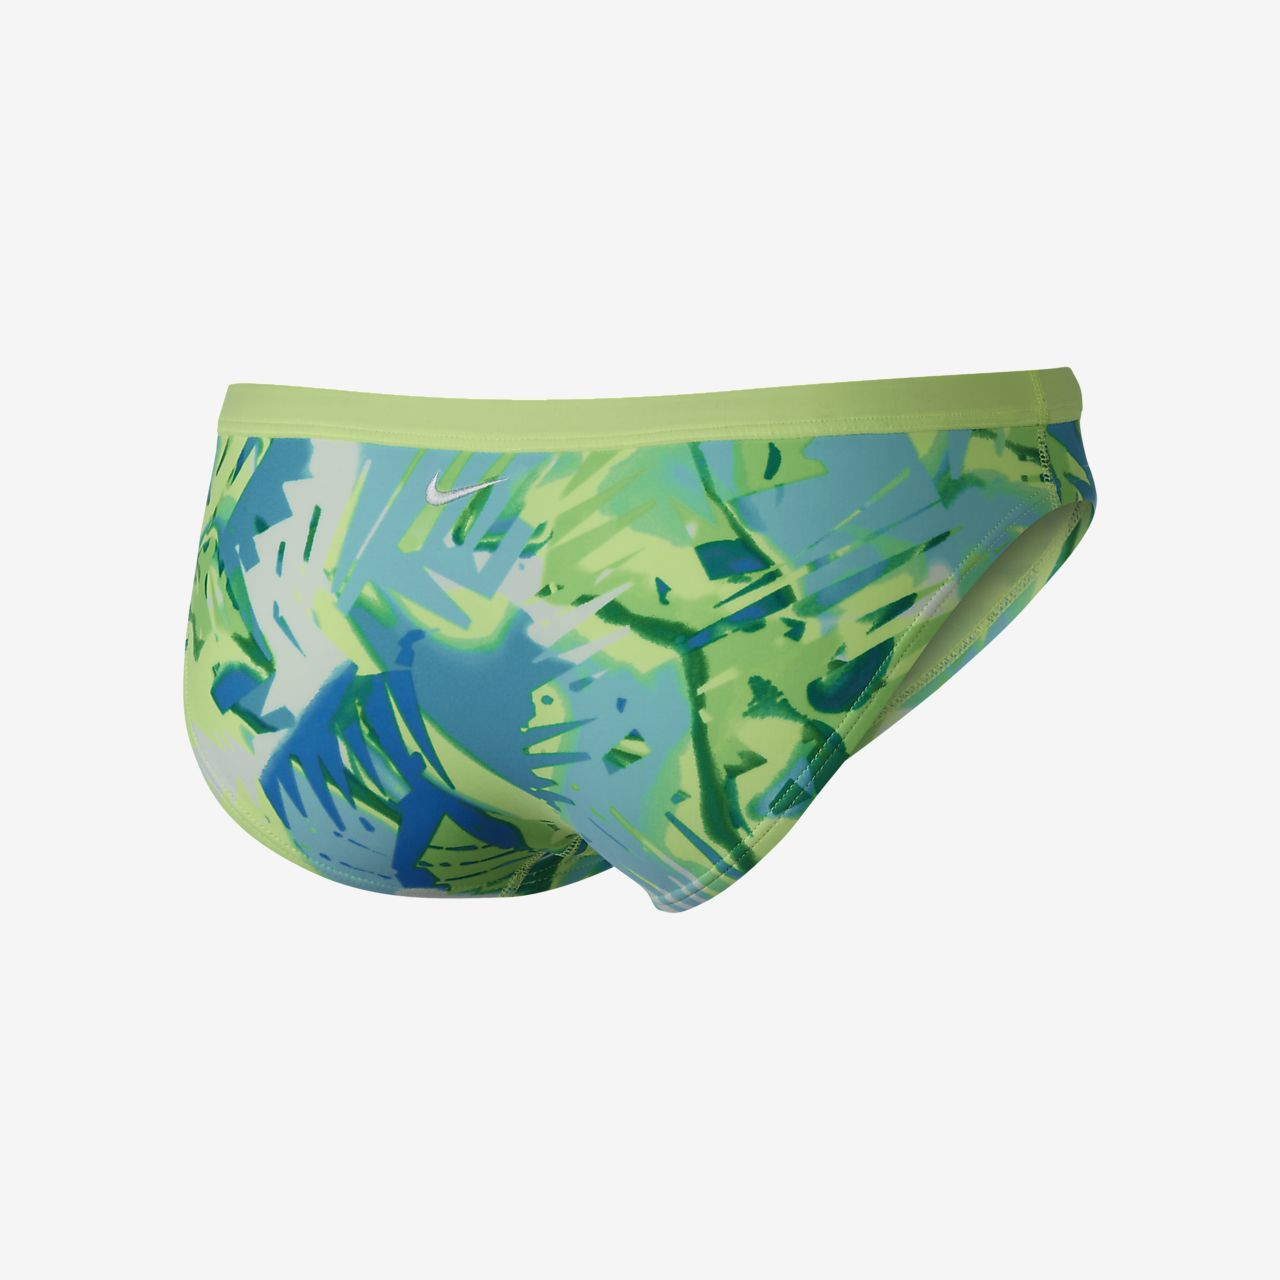 ... Nike Tropical Brief Women's Swim Bottoms